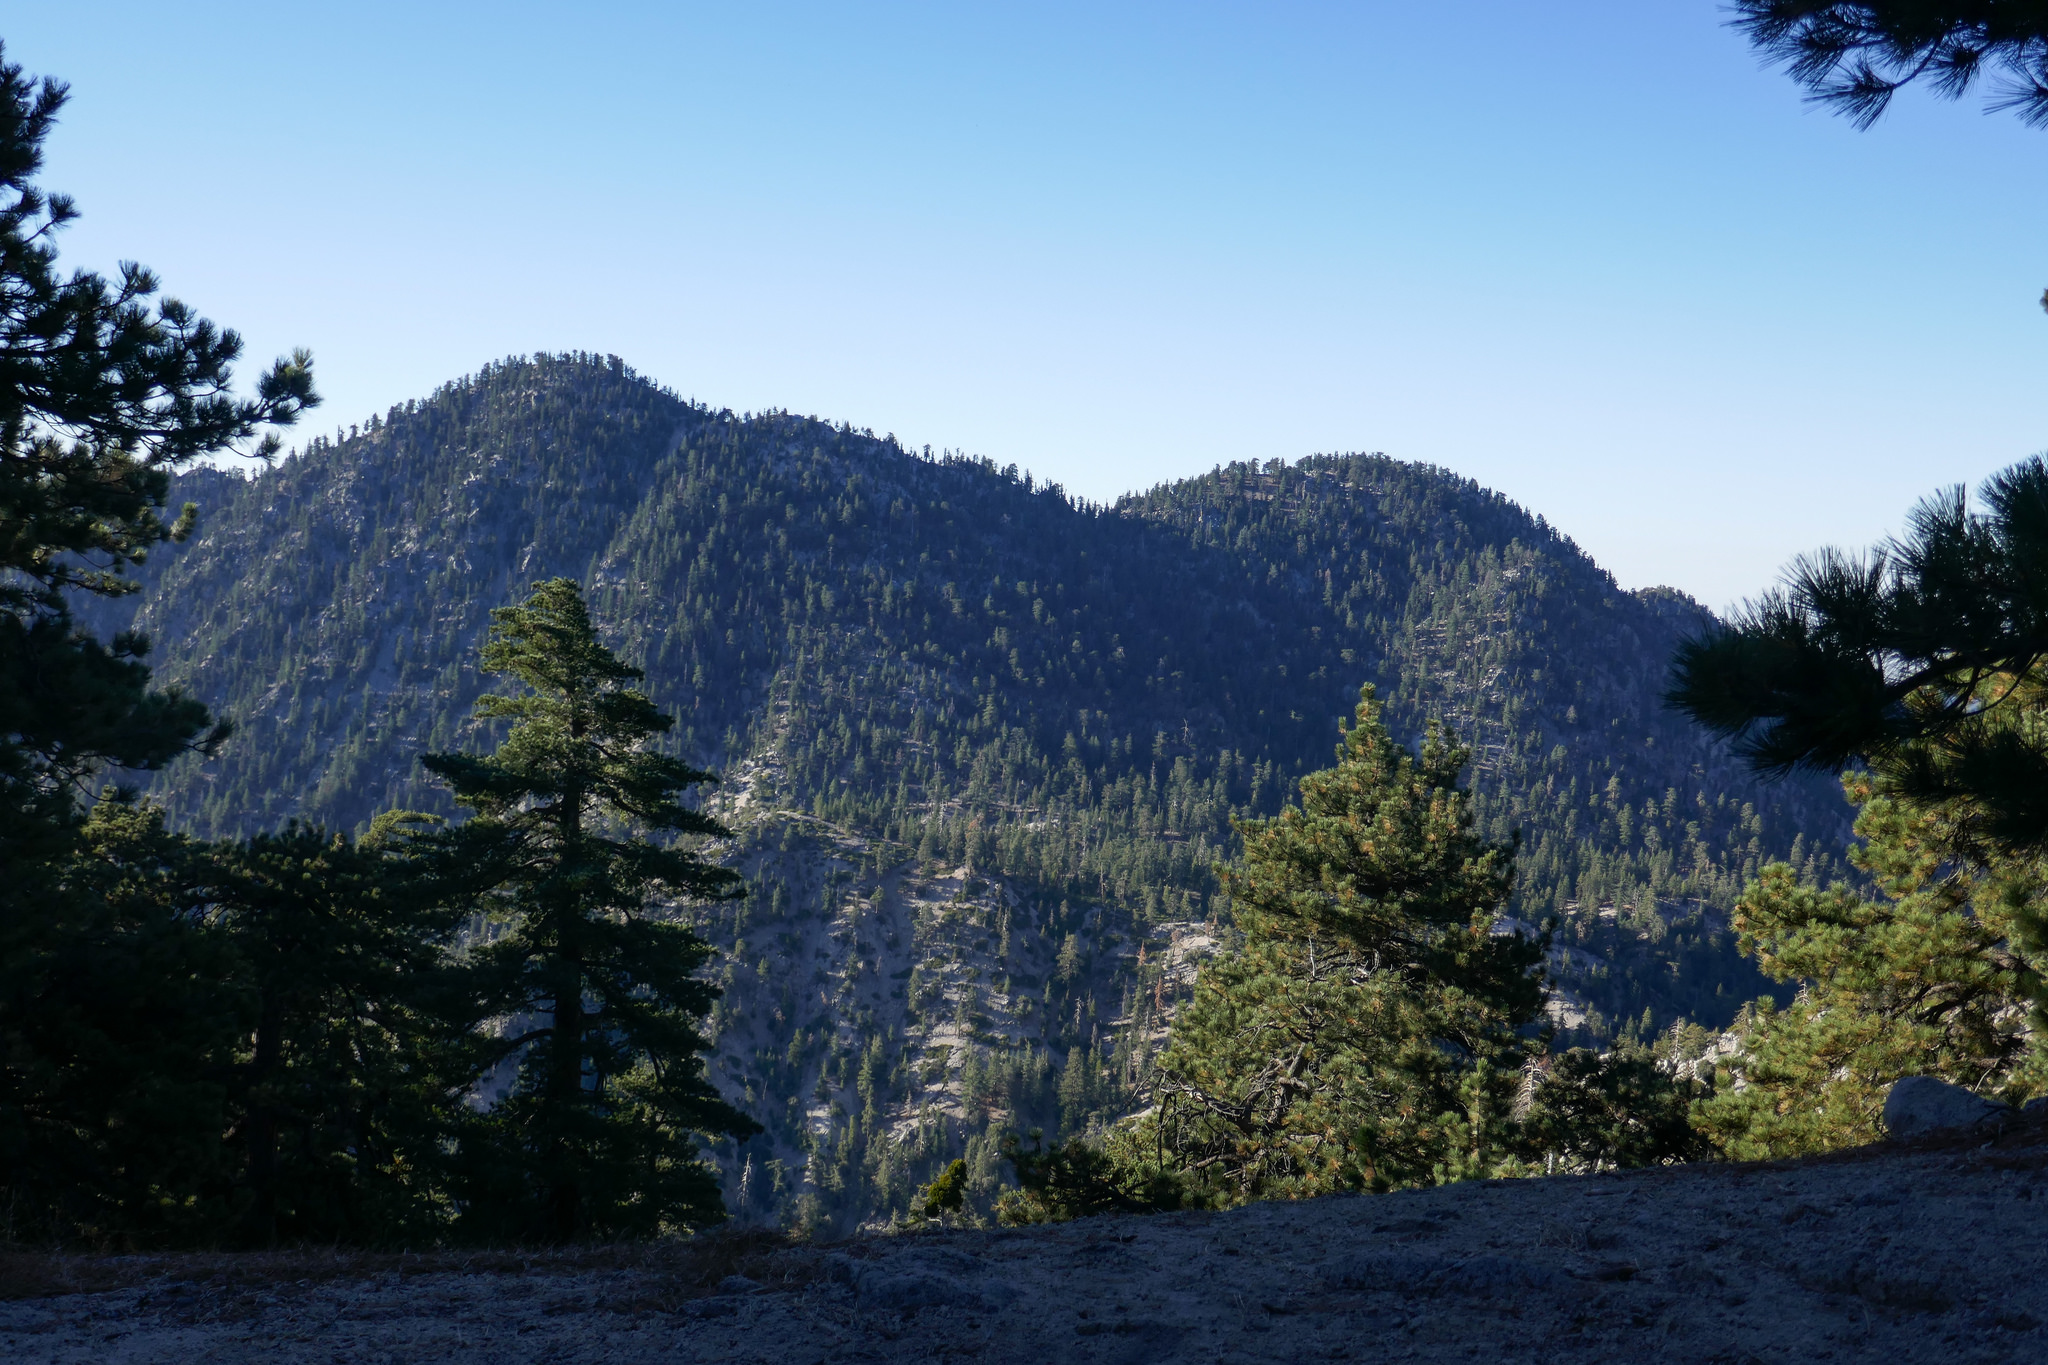 Looking out at the San Gabriel Wilderness.